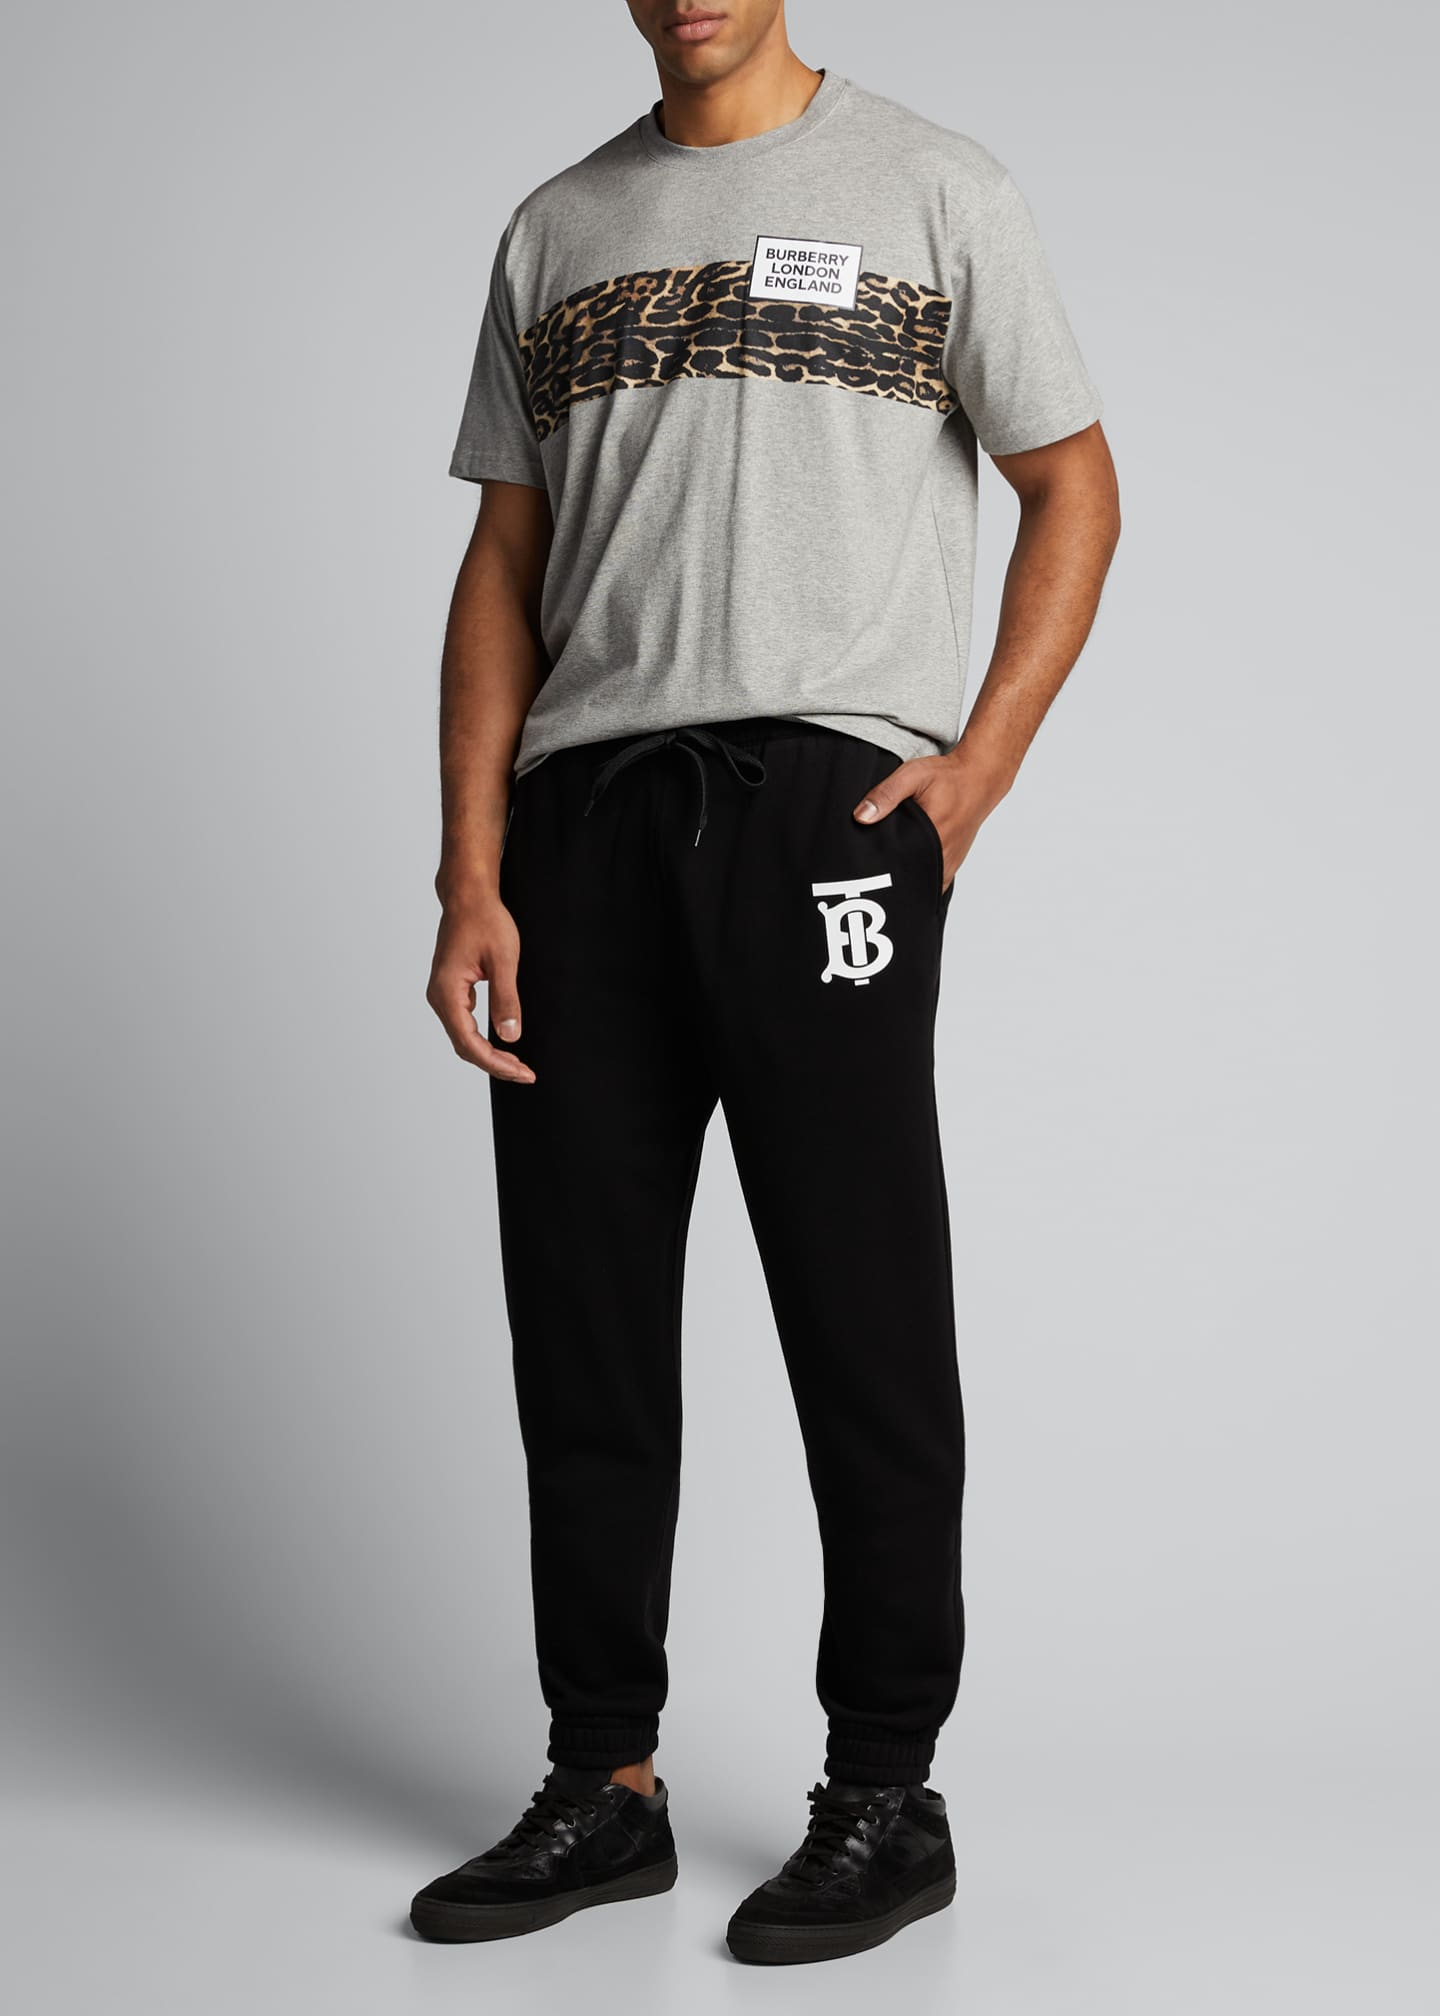 Image 1 of 5: Men's Leopard-Stripe Logo Crewneck Tee